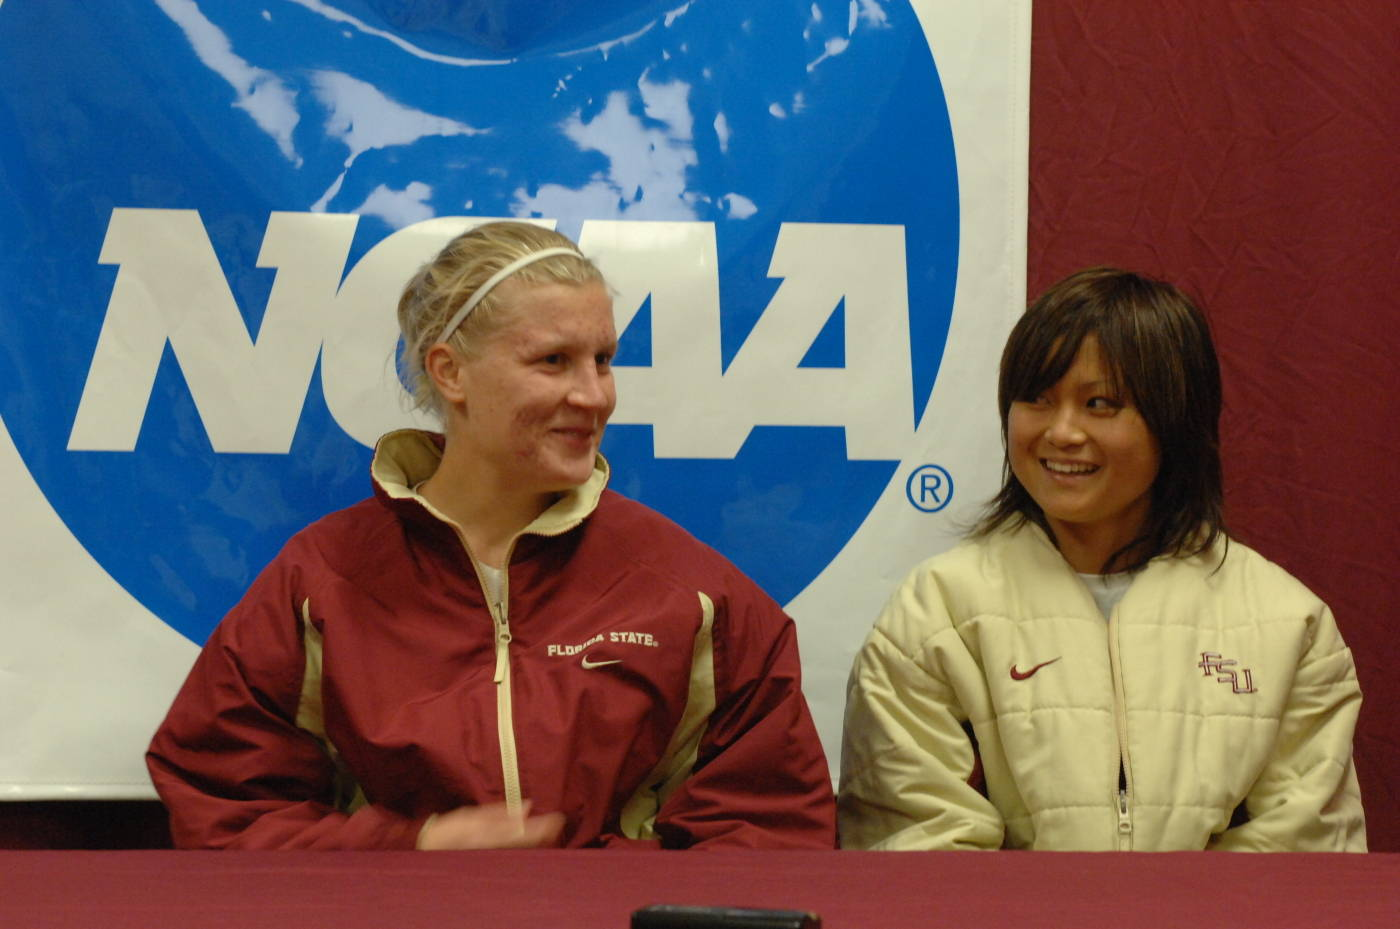 Sanna and Mami talk about the win in the postgame press conference